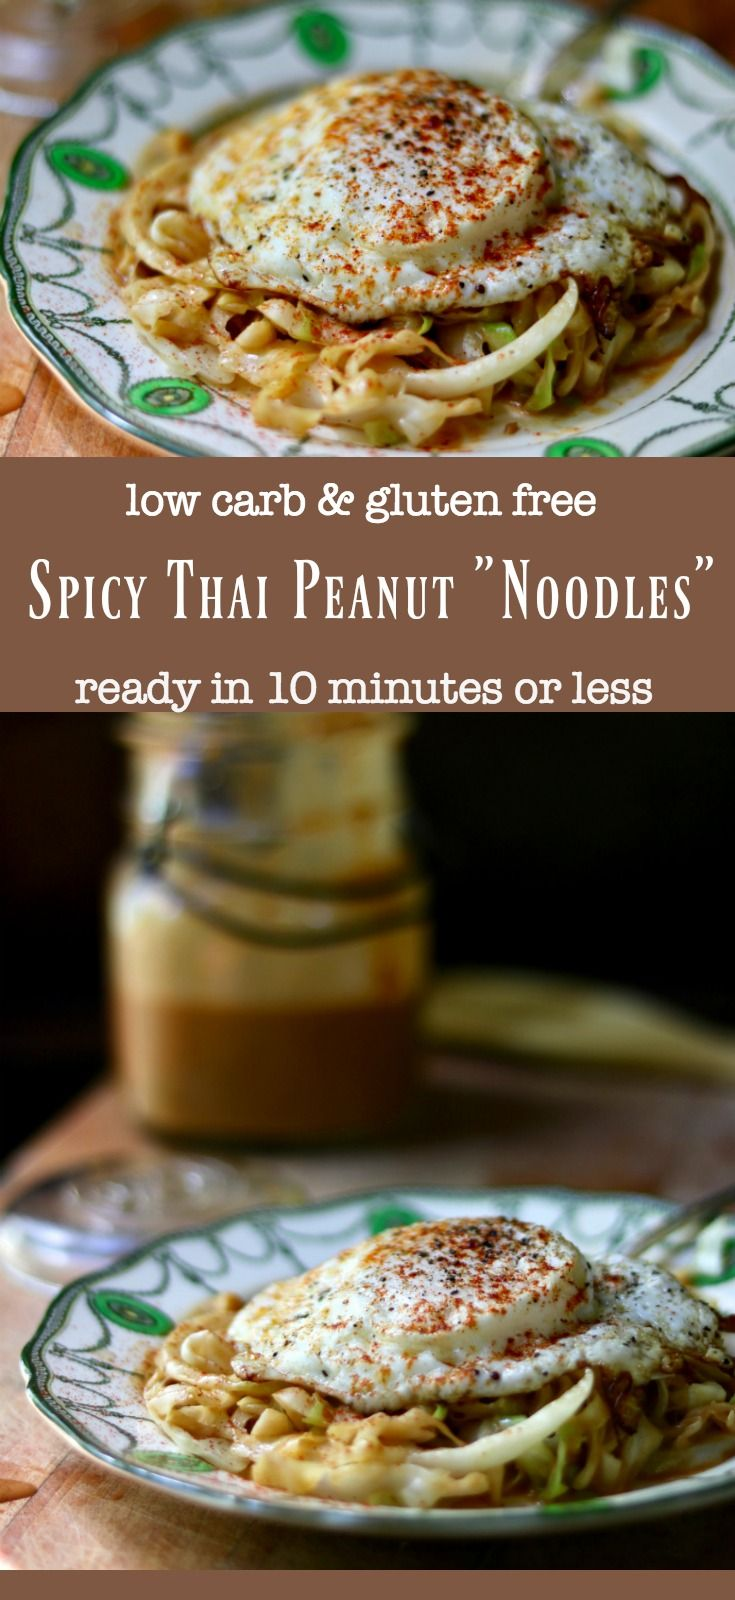 Easy, low carb Thai peanut noodles are ready in 10 minutes - keto friendly recipe that tastes amazing! SO addictive. From Lowcarb-ology.com